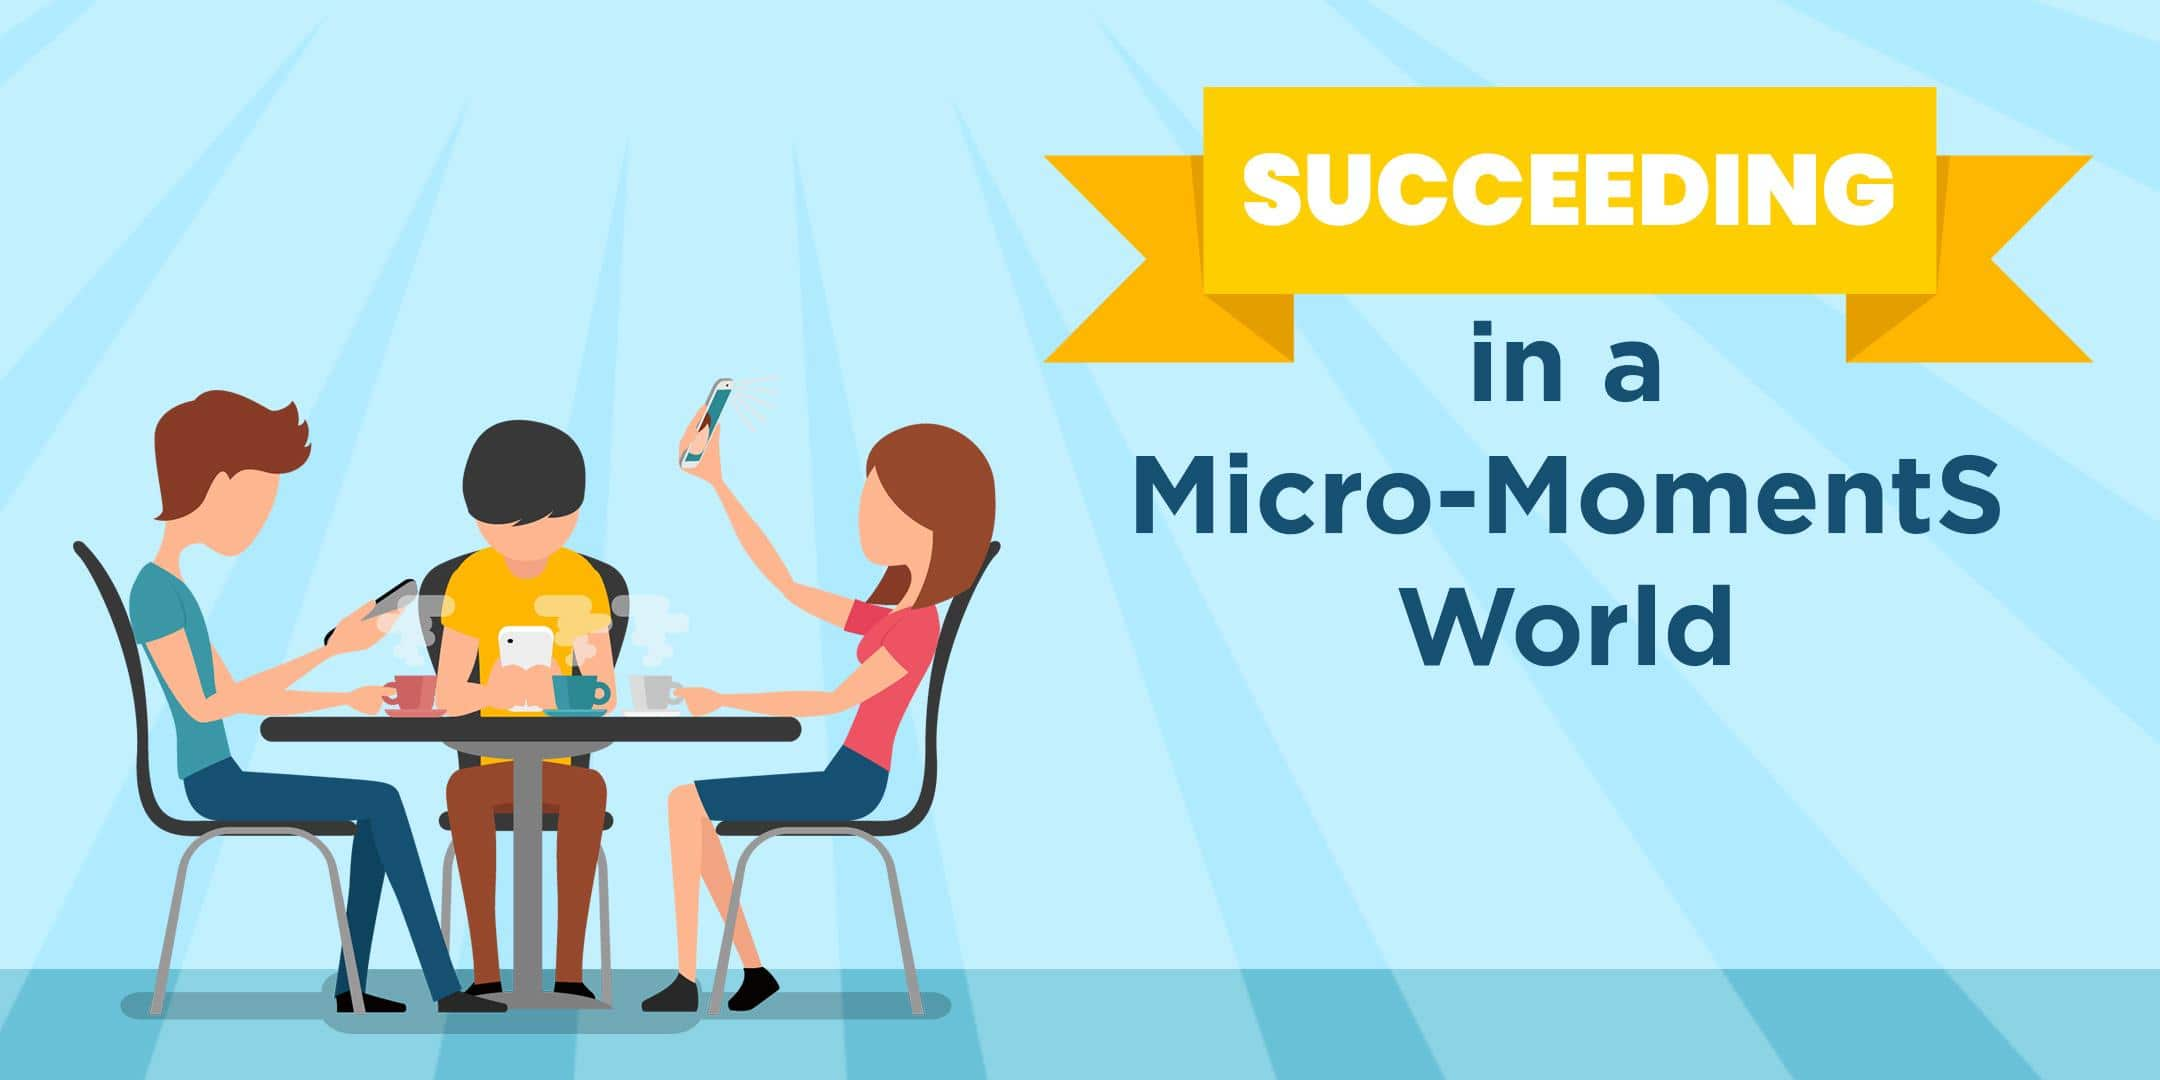 Succeeding in a Micro-Moments World thumbnail image